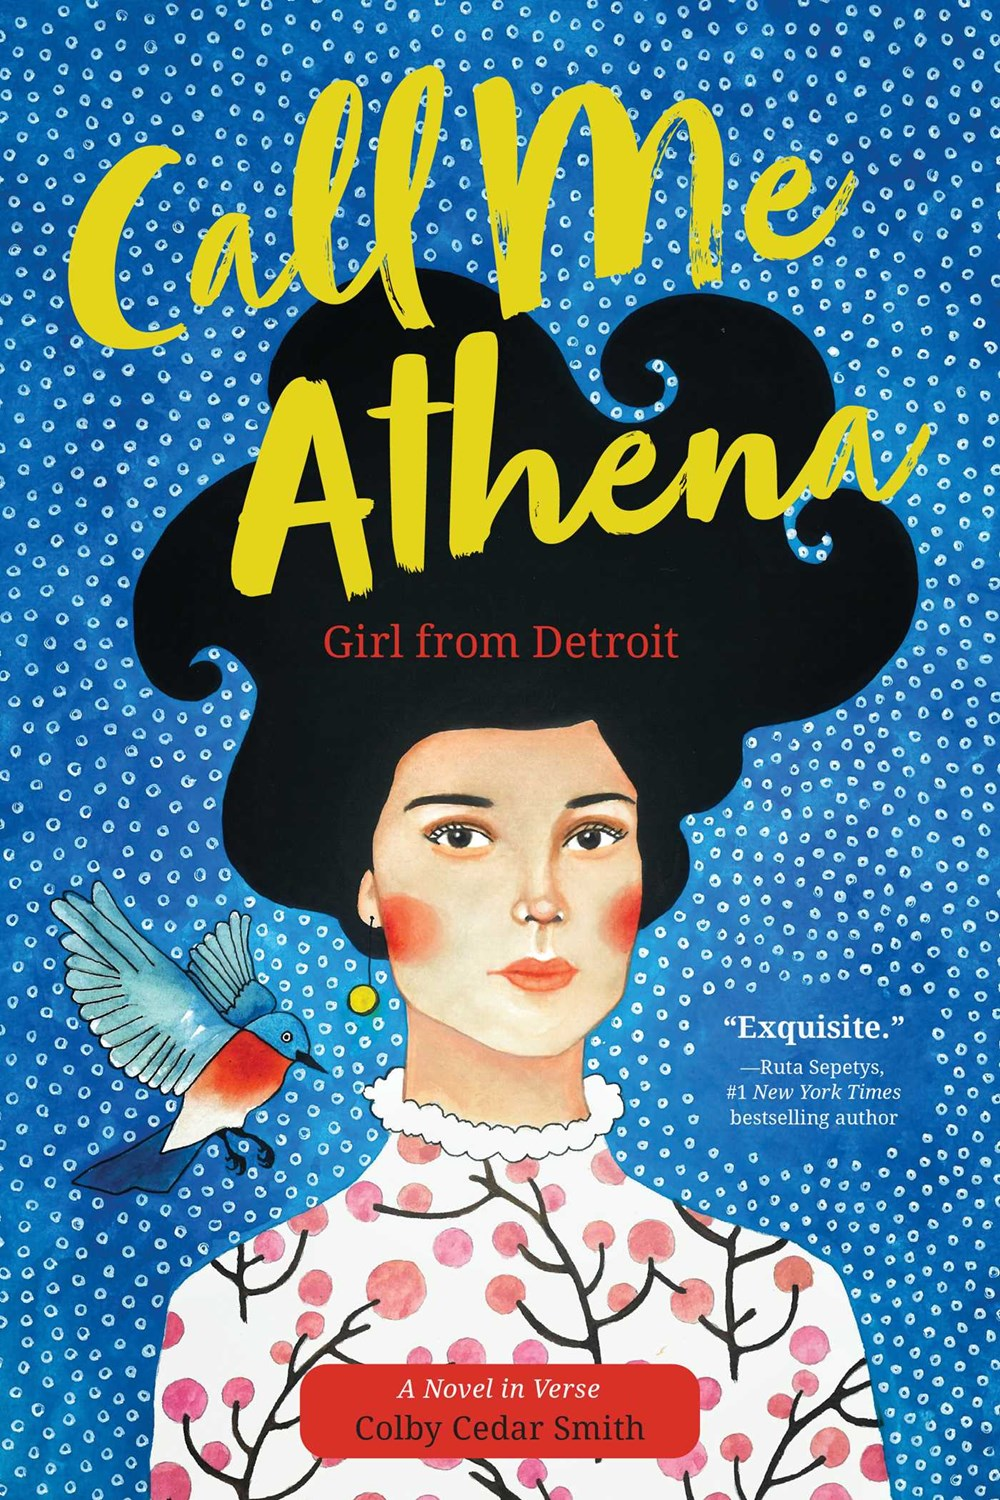 Call Me Athena: Girl from Detroit by Colby Cedar Smith